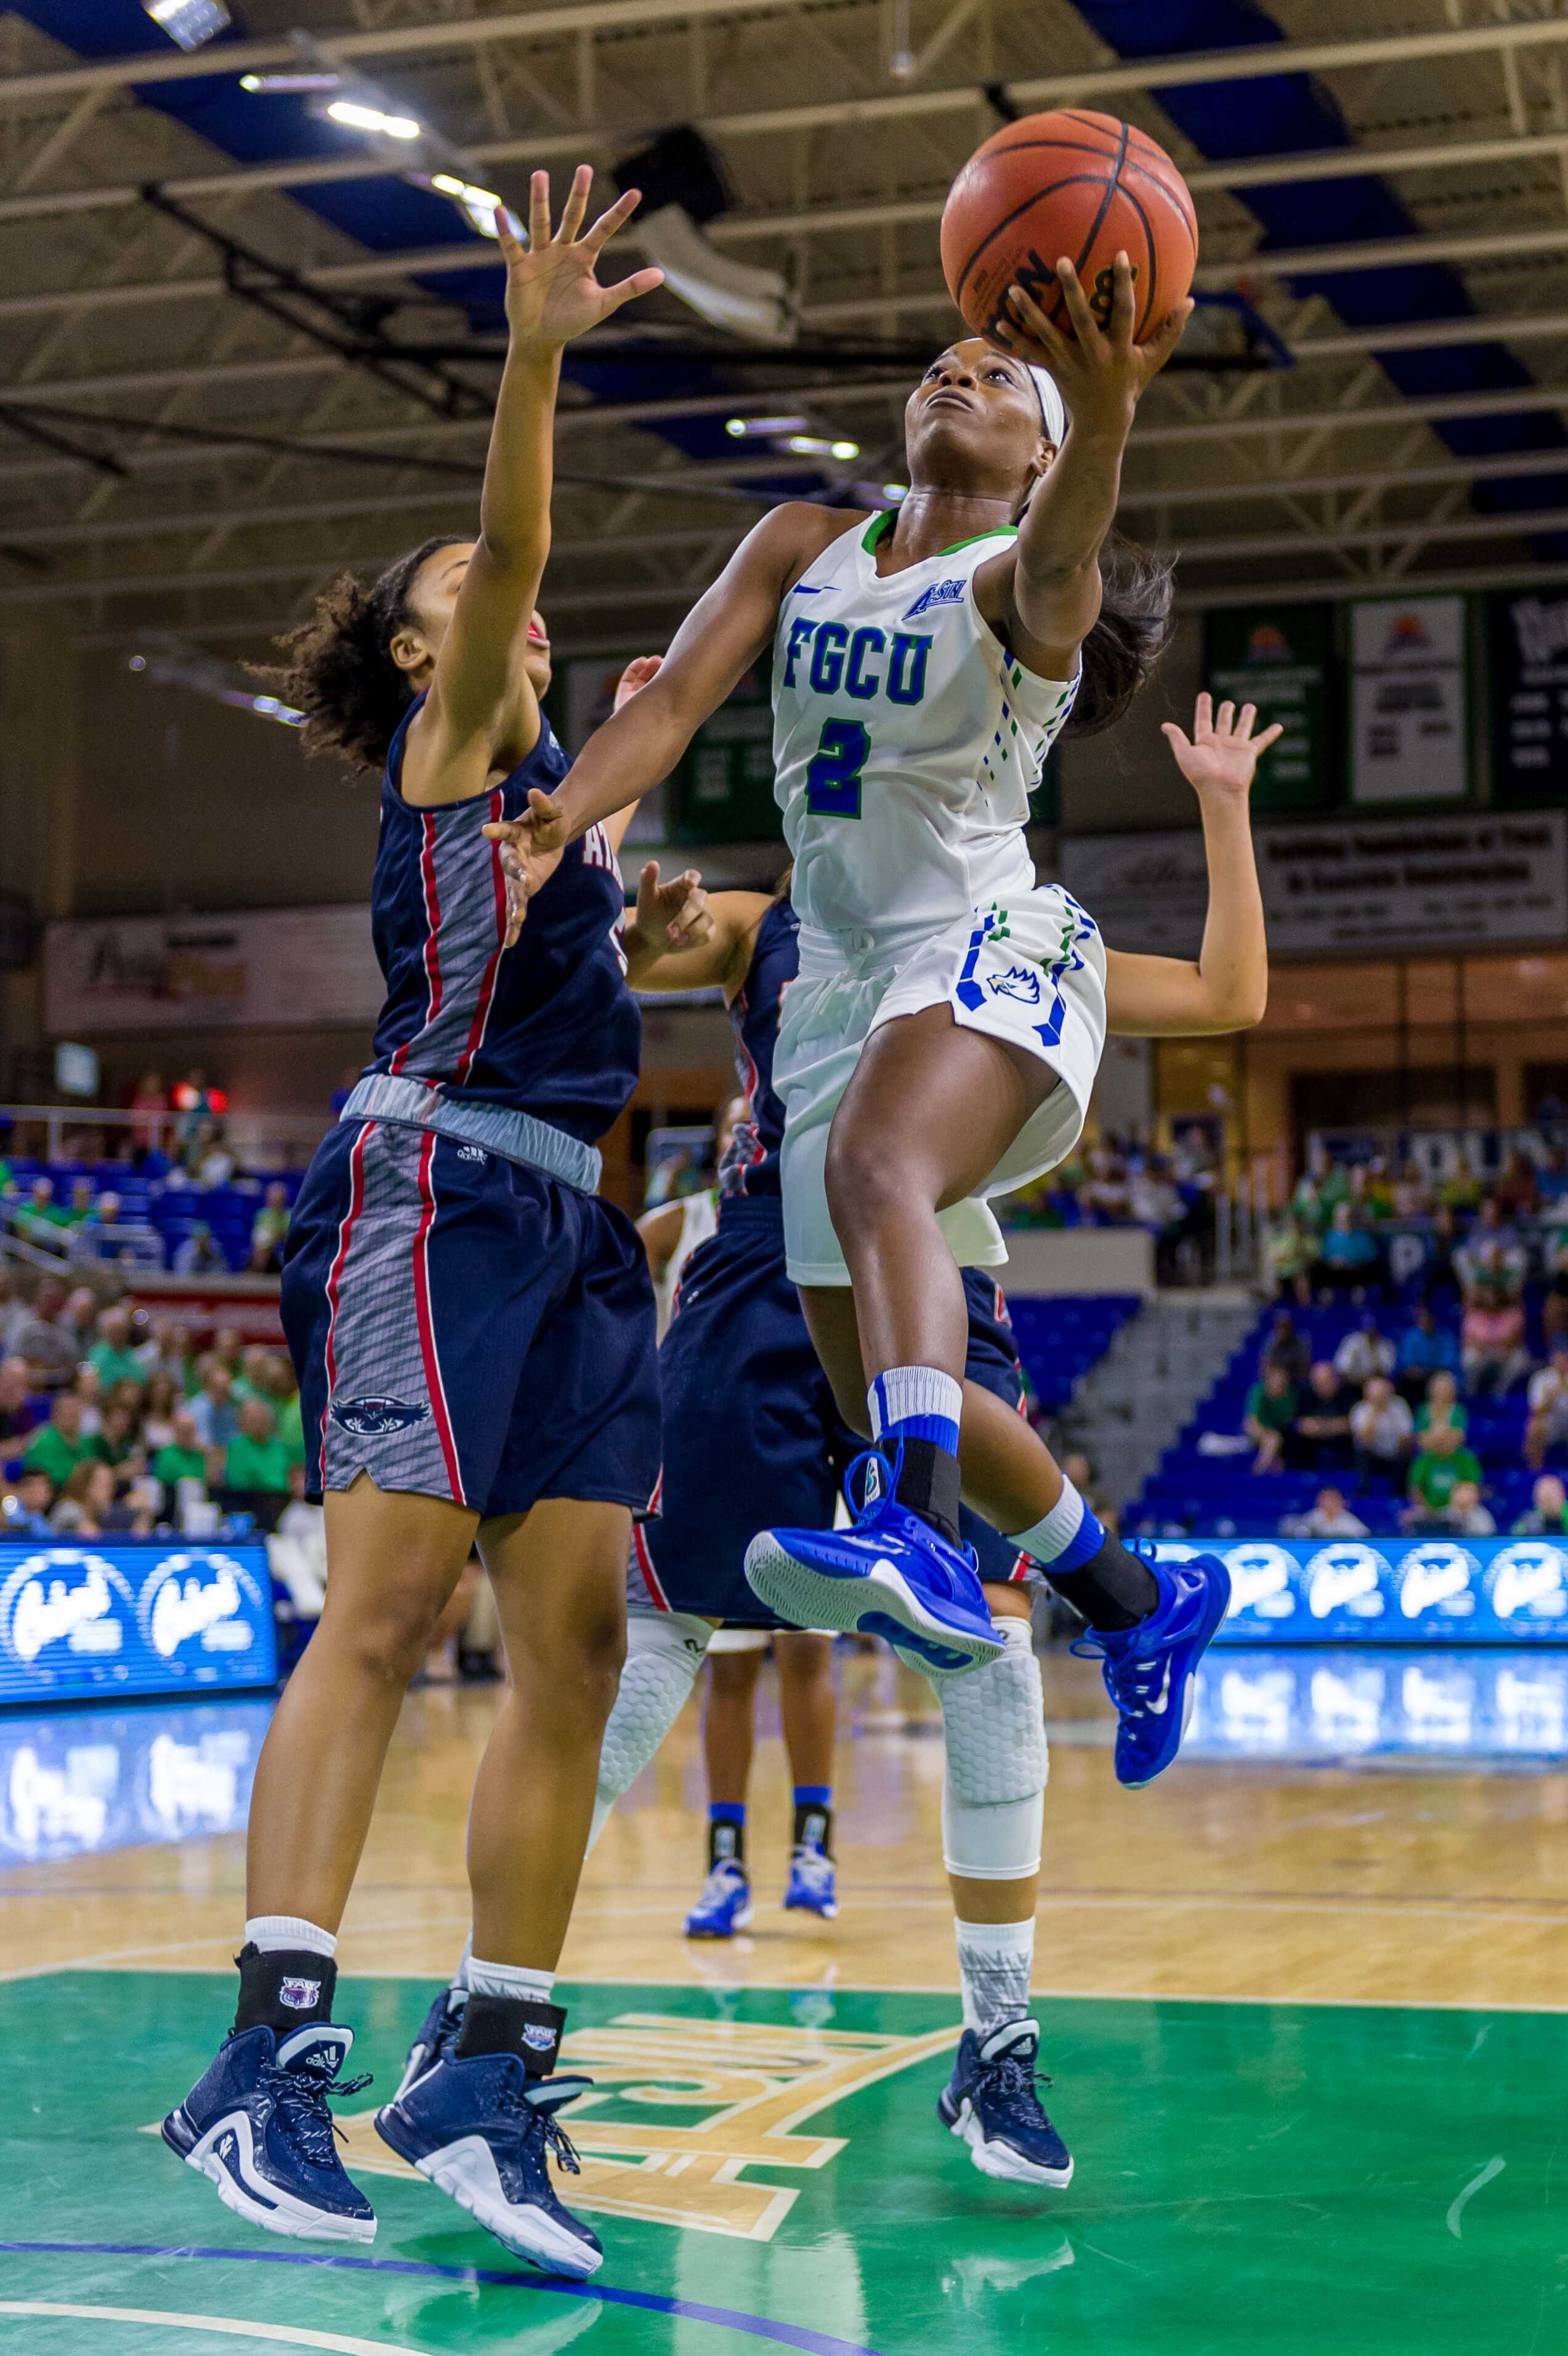 Atwater scores 25 for FGCU in close game with No. 9 Mississippi State